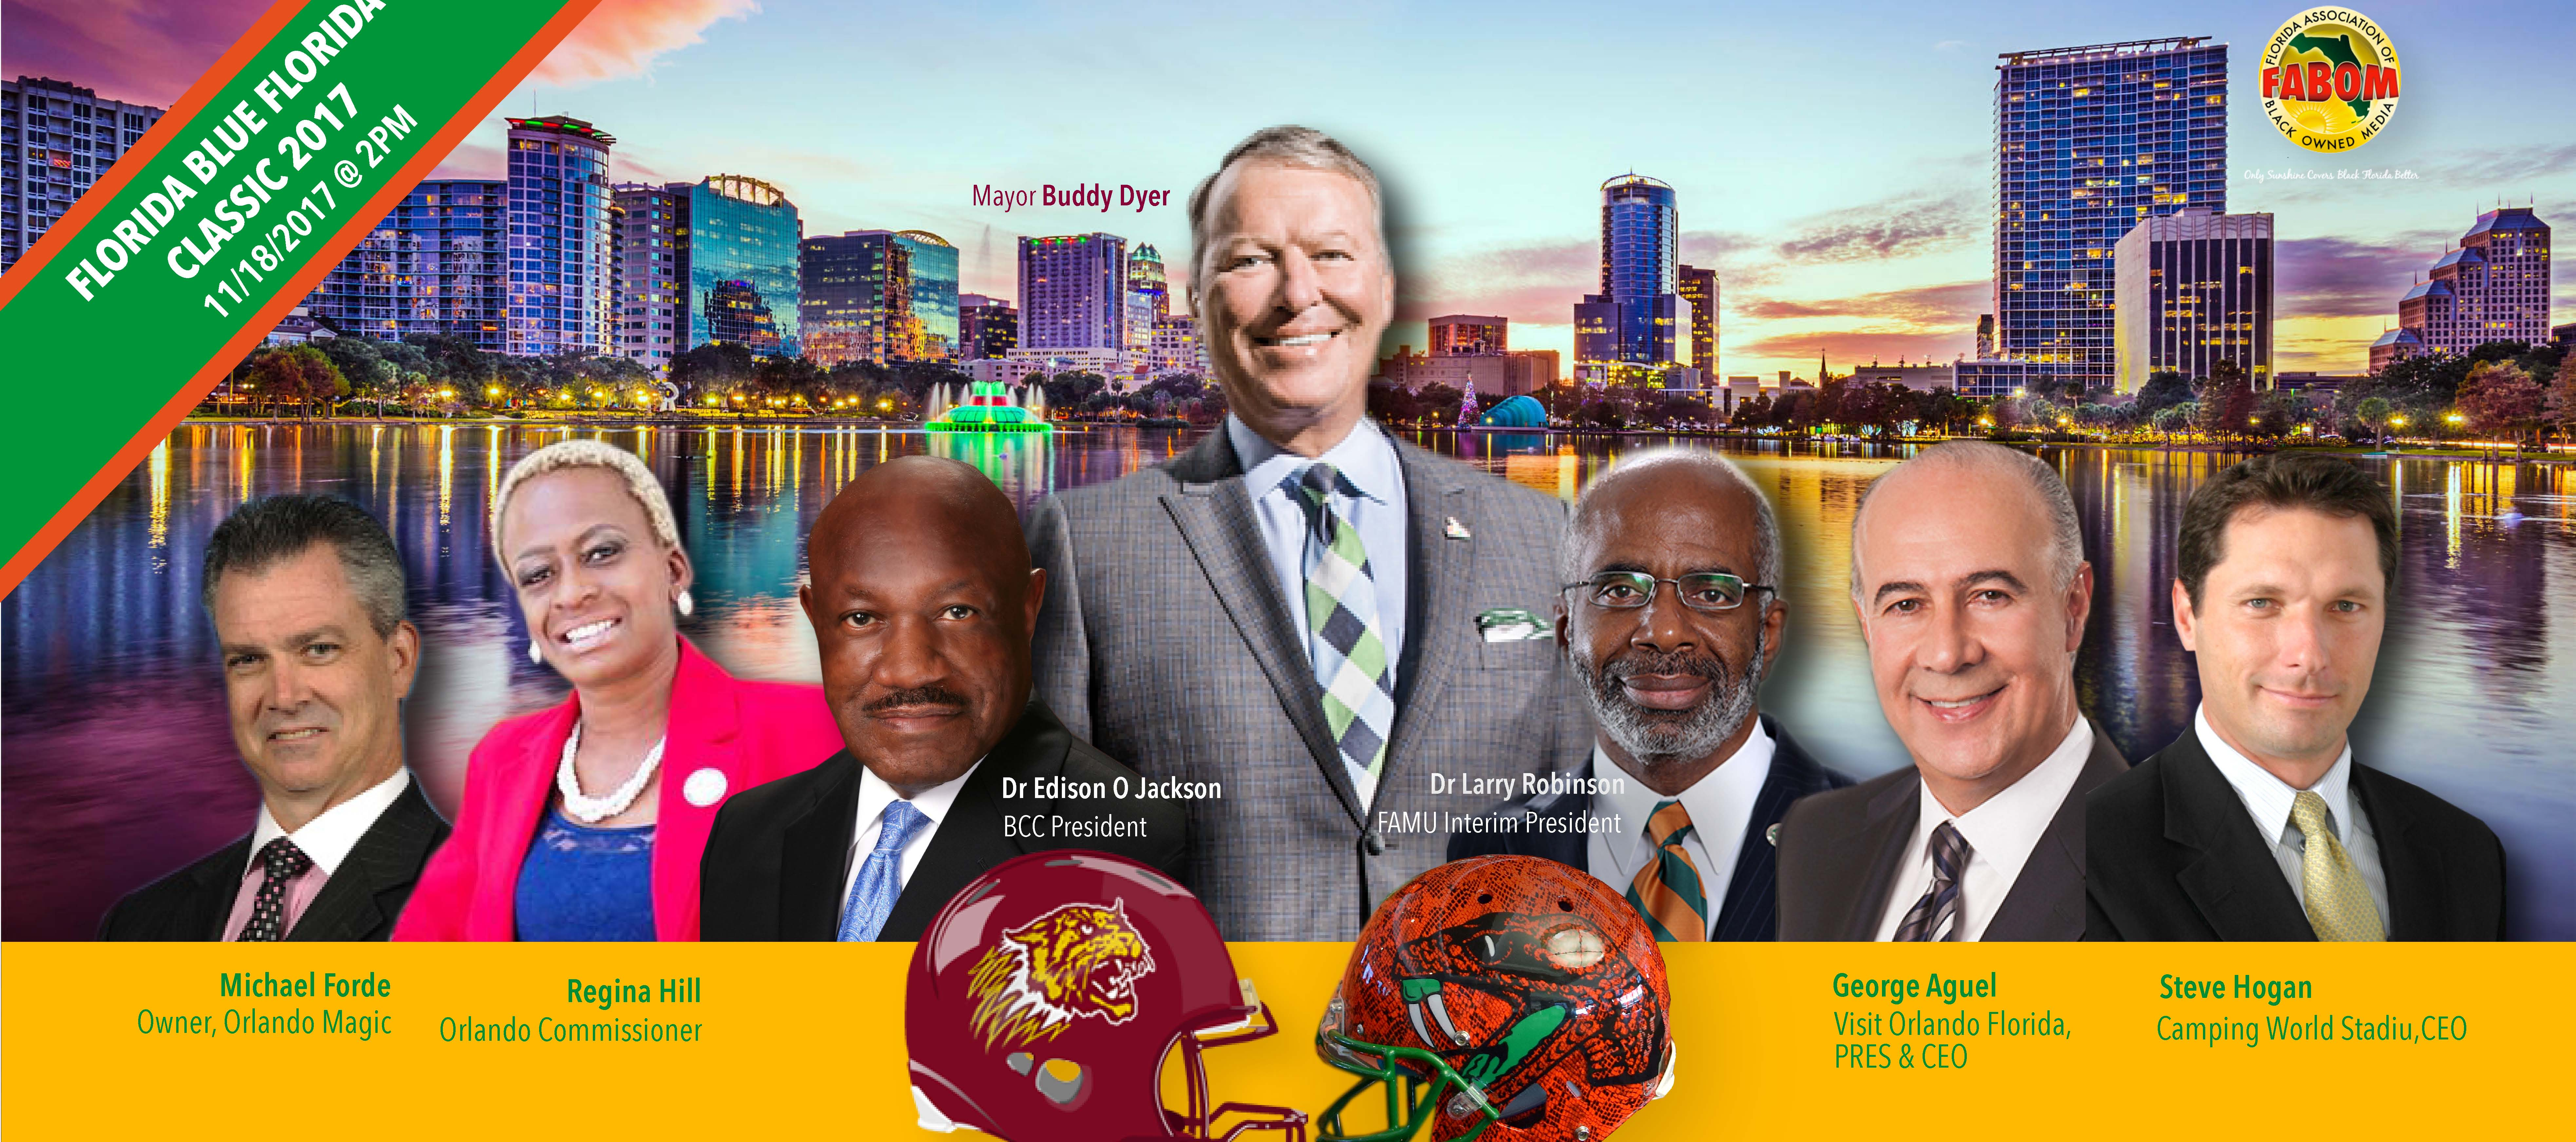 Dr. Larry Robinson can already taste the banana pudding.